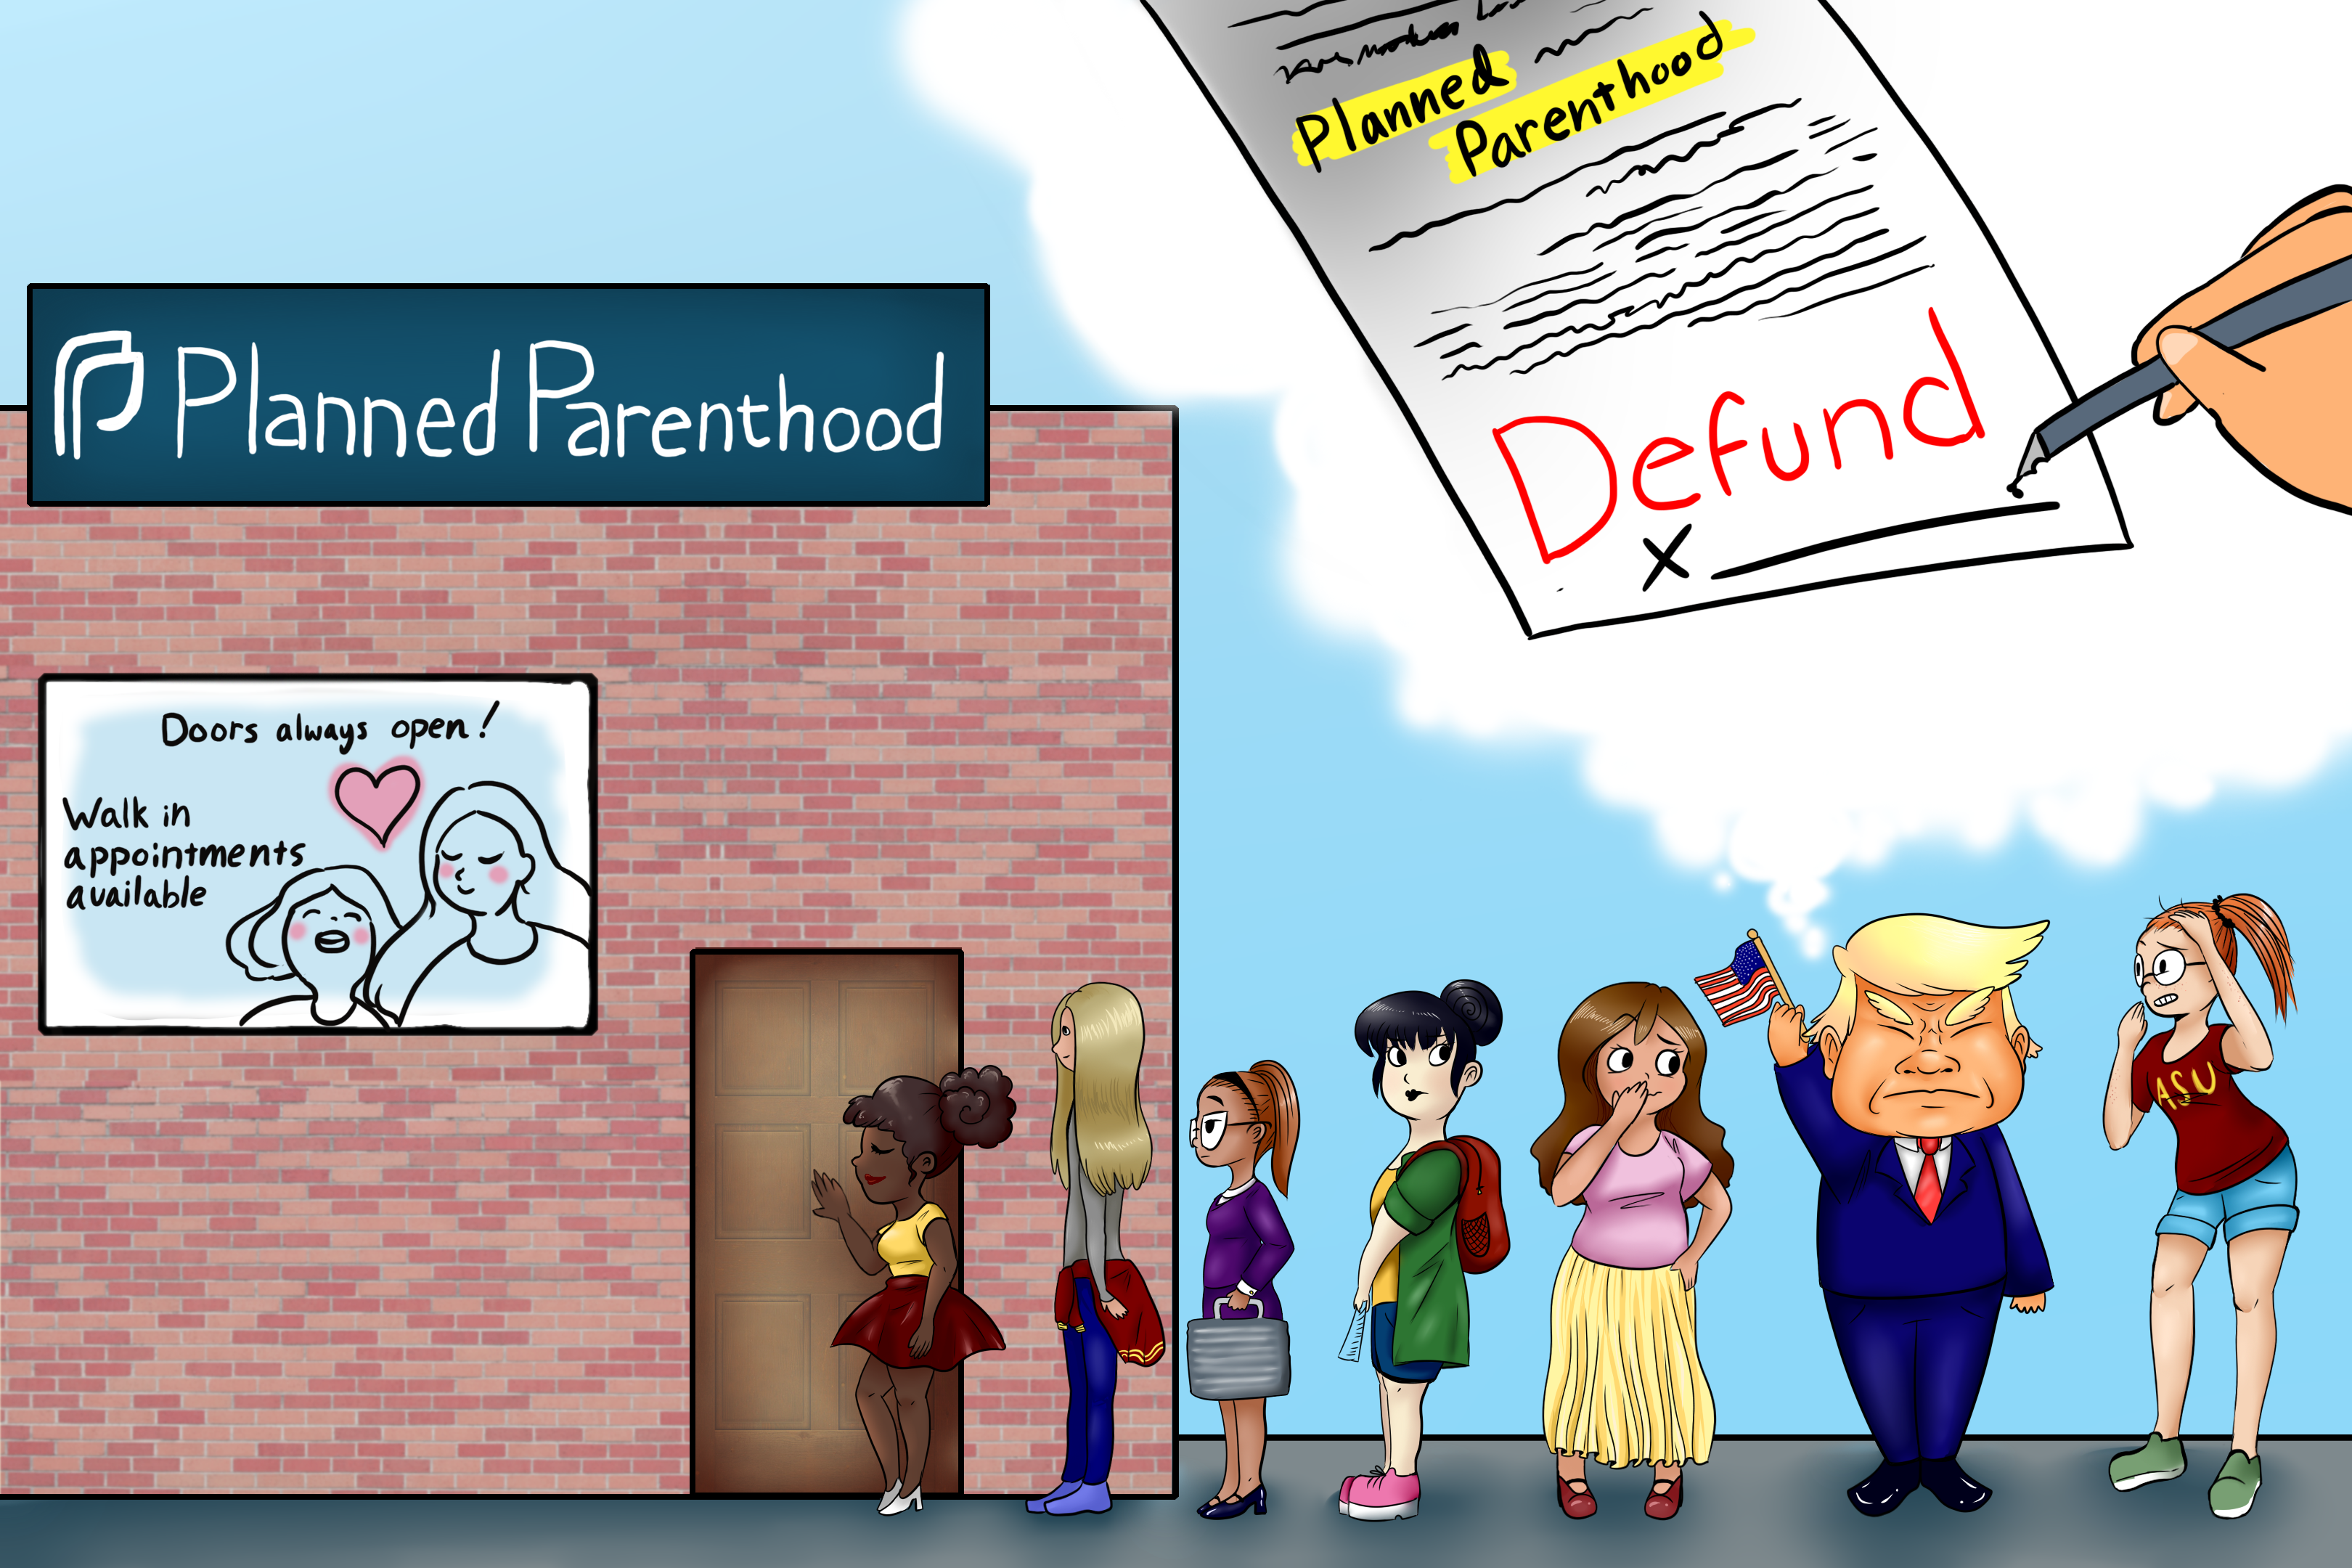 Defunding Planned Parenthood is bad idea